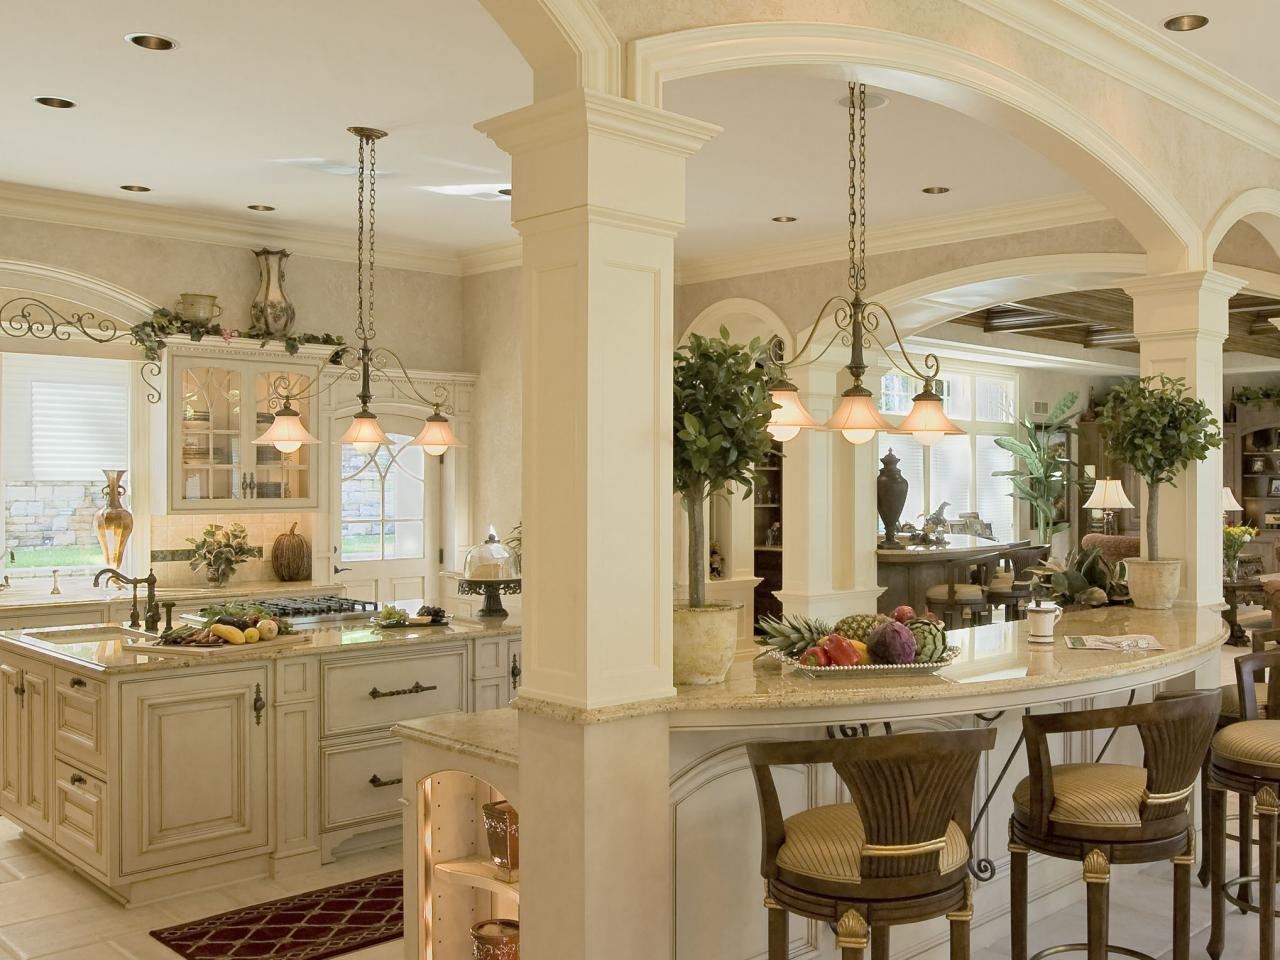 Cool Colonial Kitchens | Hgtv in Beautiful Colonial Kitchen Design